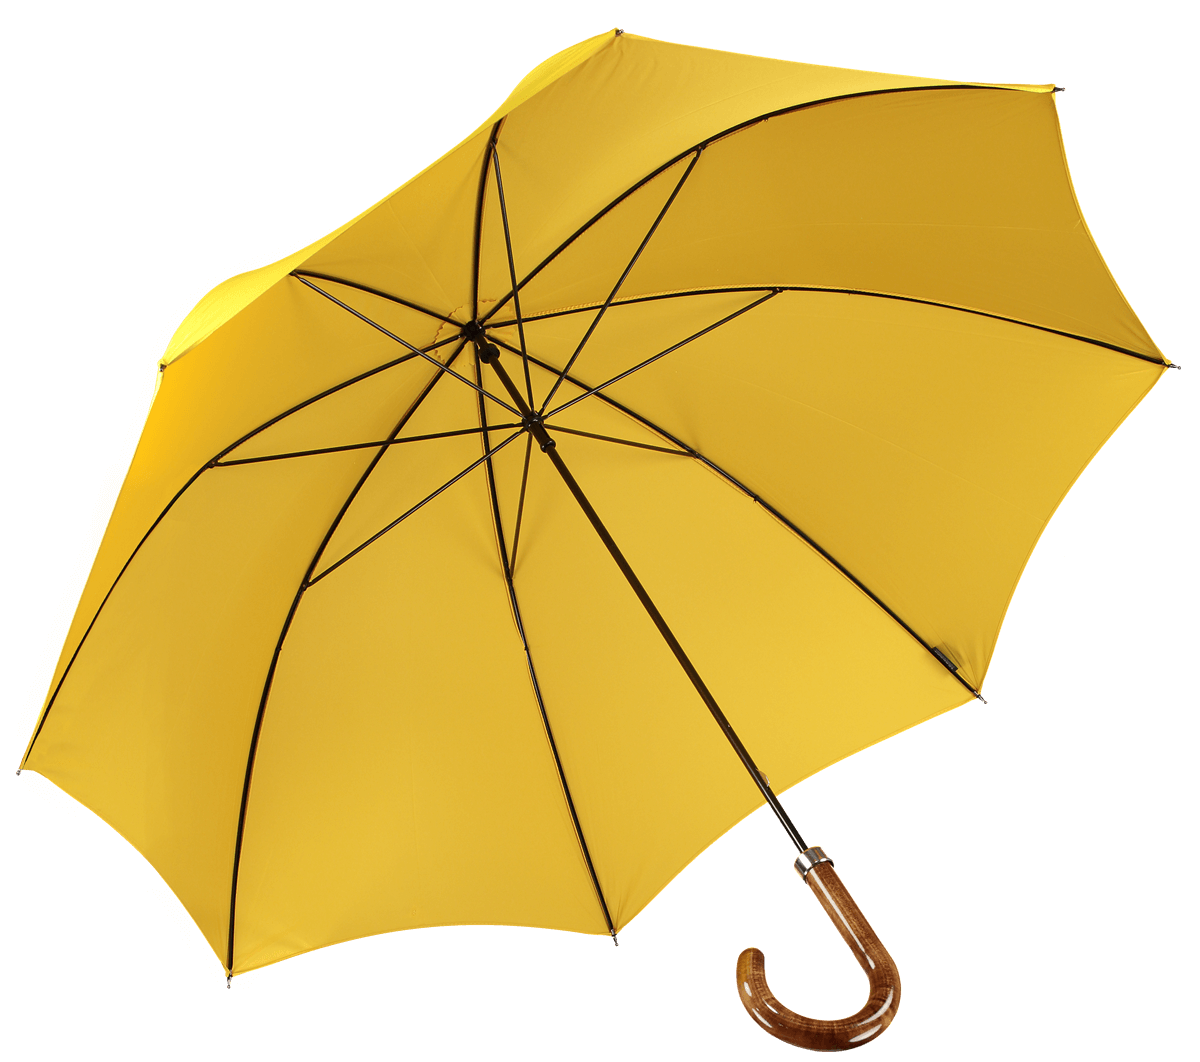 Cad the dandy gentleman. Clipart umbrella yellow umbrella